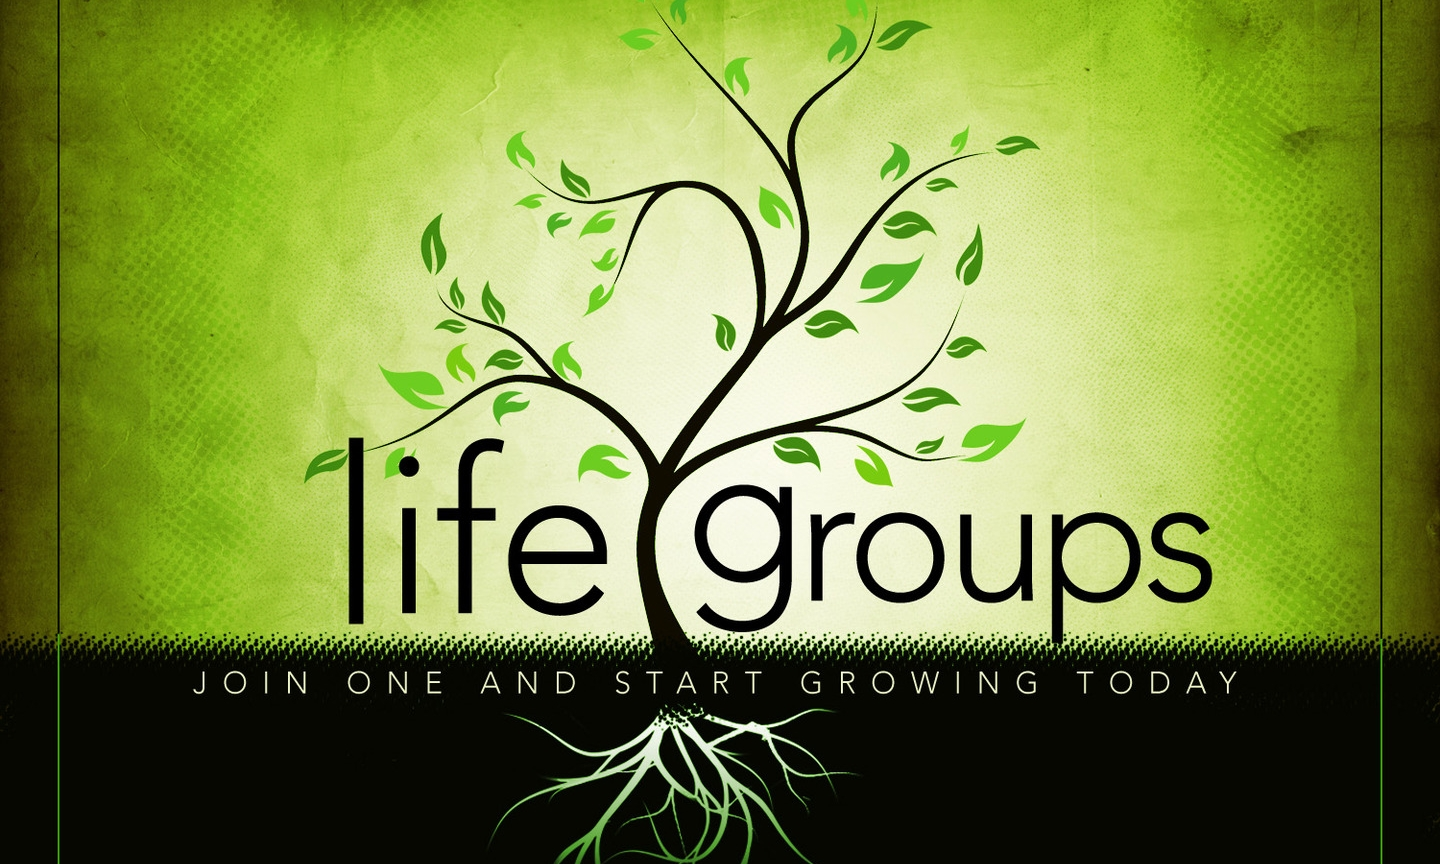 life_groups-title-1-still-4x3.jpg